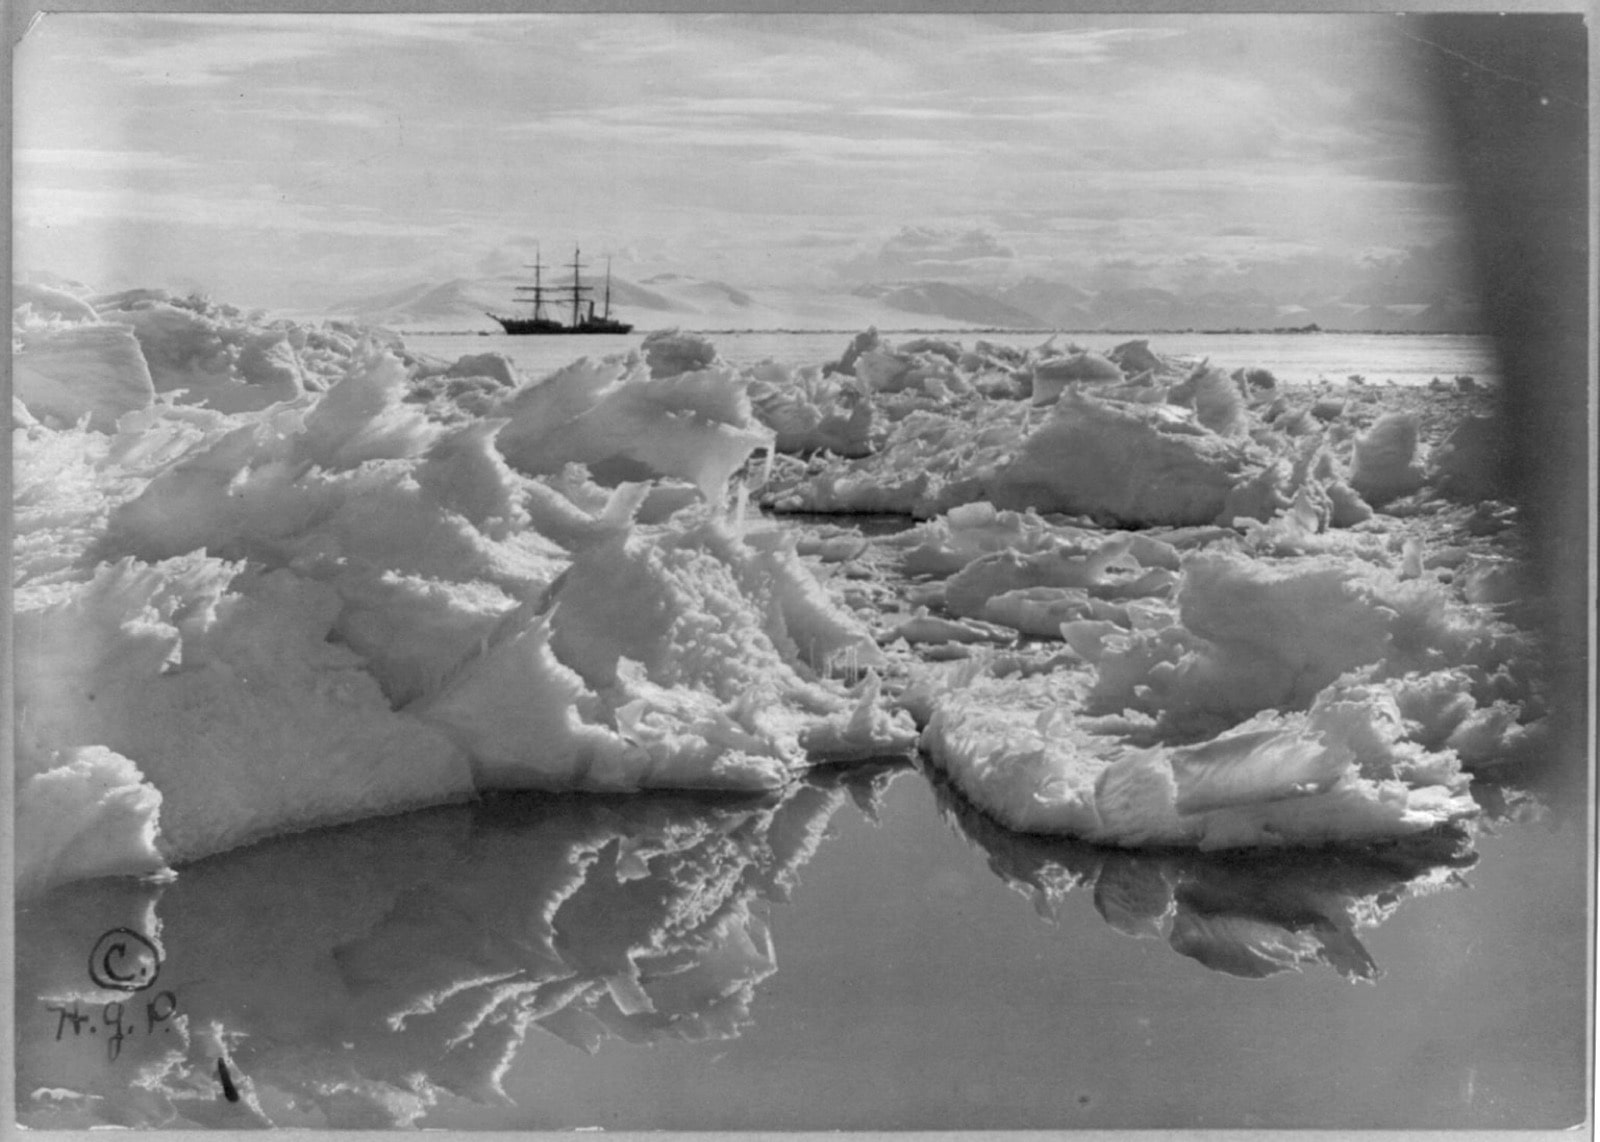 The ship  Terra Nova,  in McMurdo Sound. Photo by Herbert G. Ponting/ Library of Congress